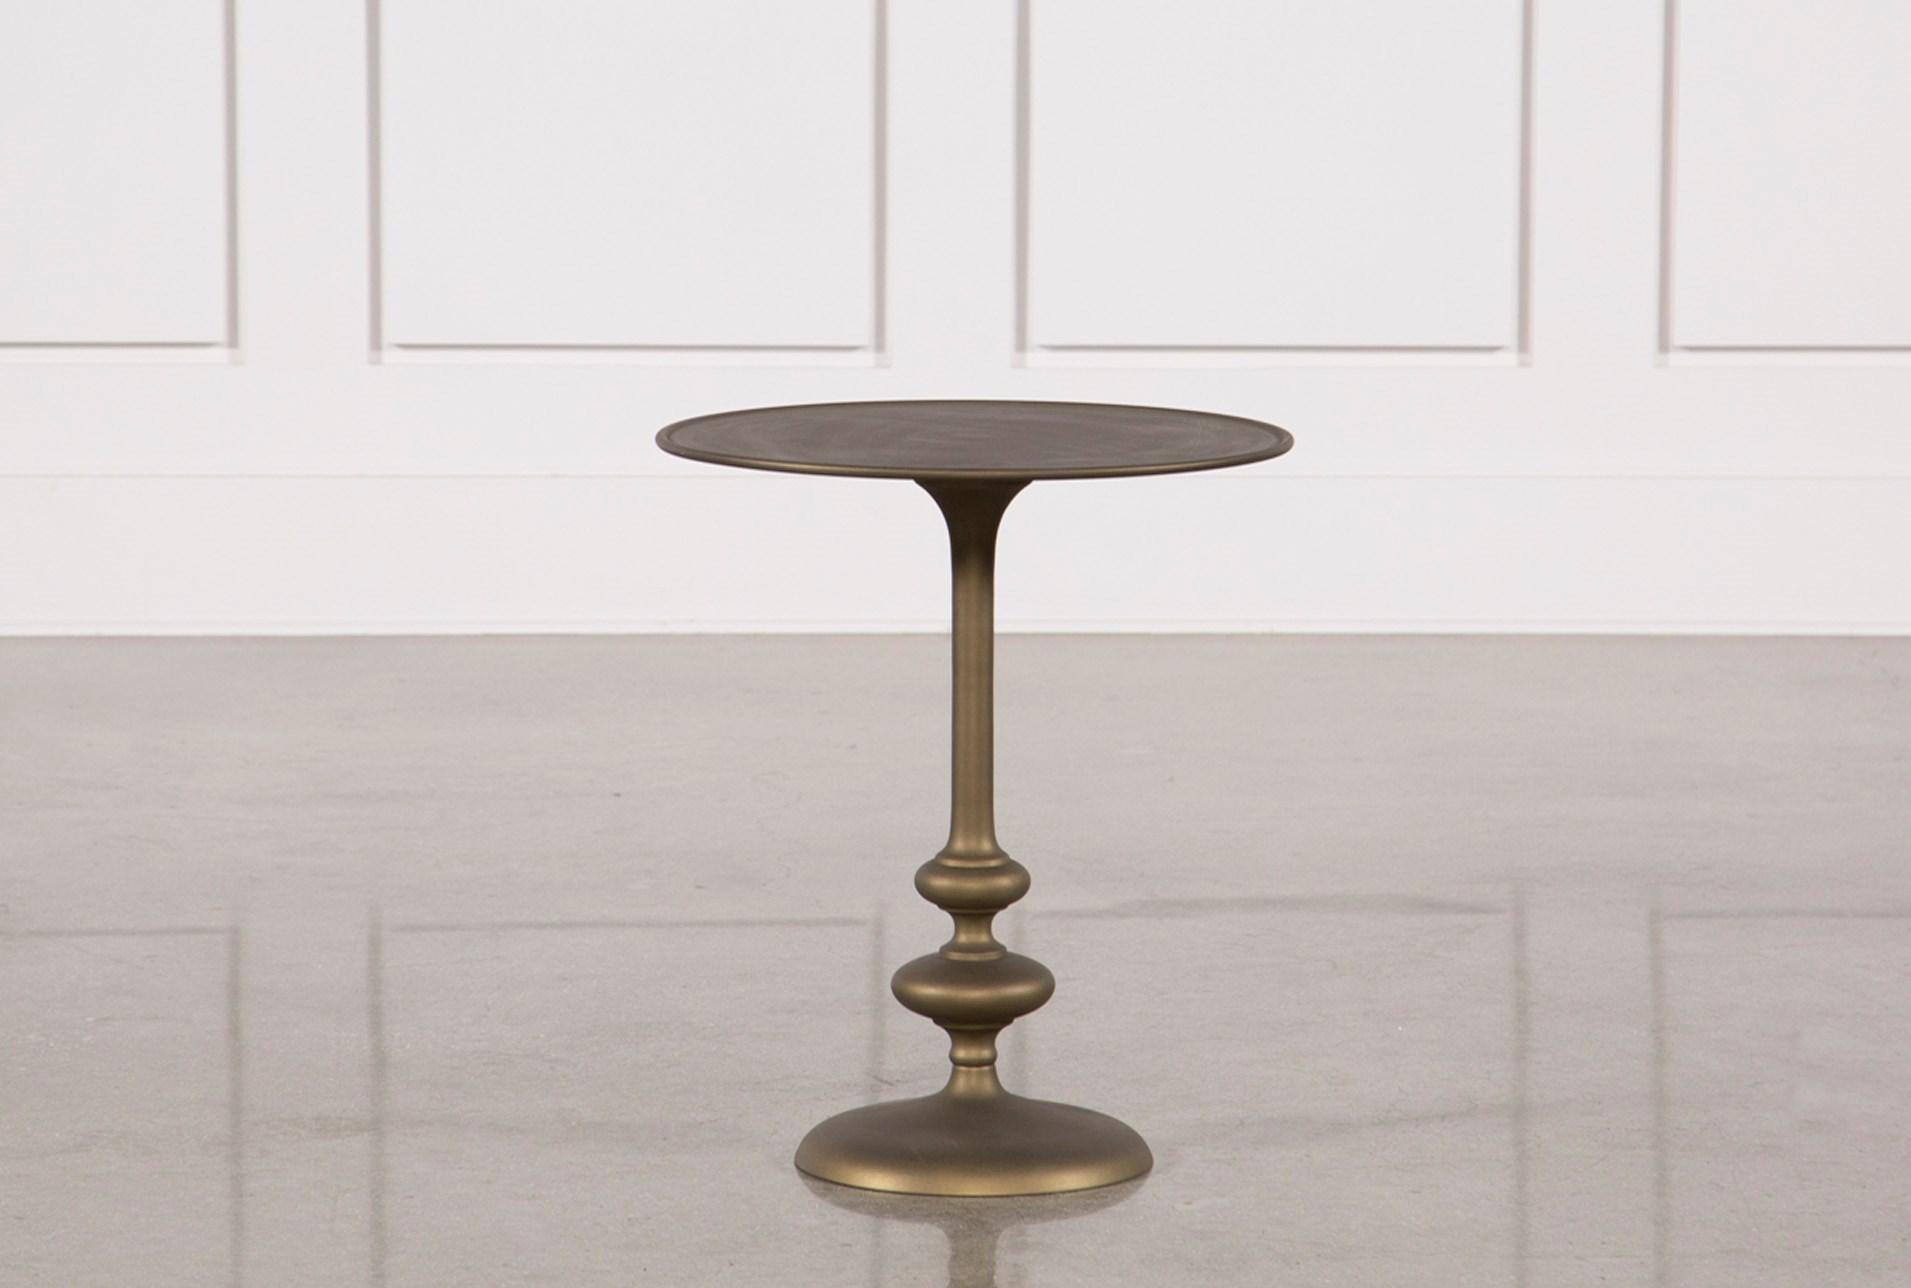 Lily pedestal accent table qty 1 has been successfully added to your cart